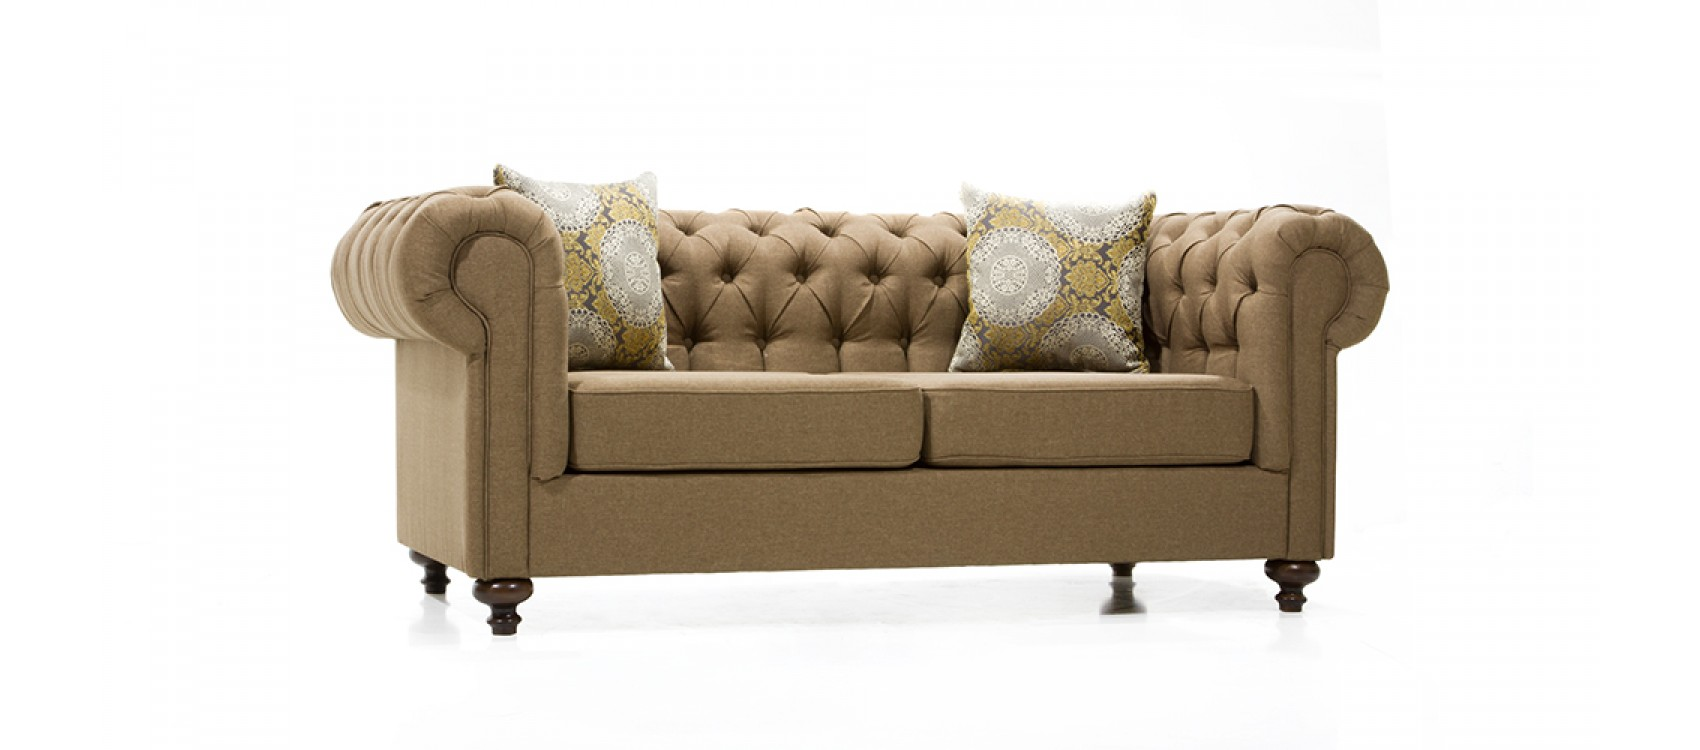 Sofa CHESTER 2 SEATER фото 2